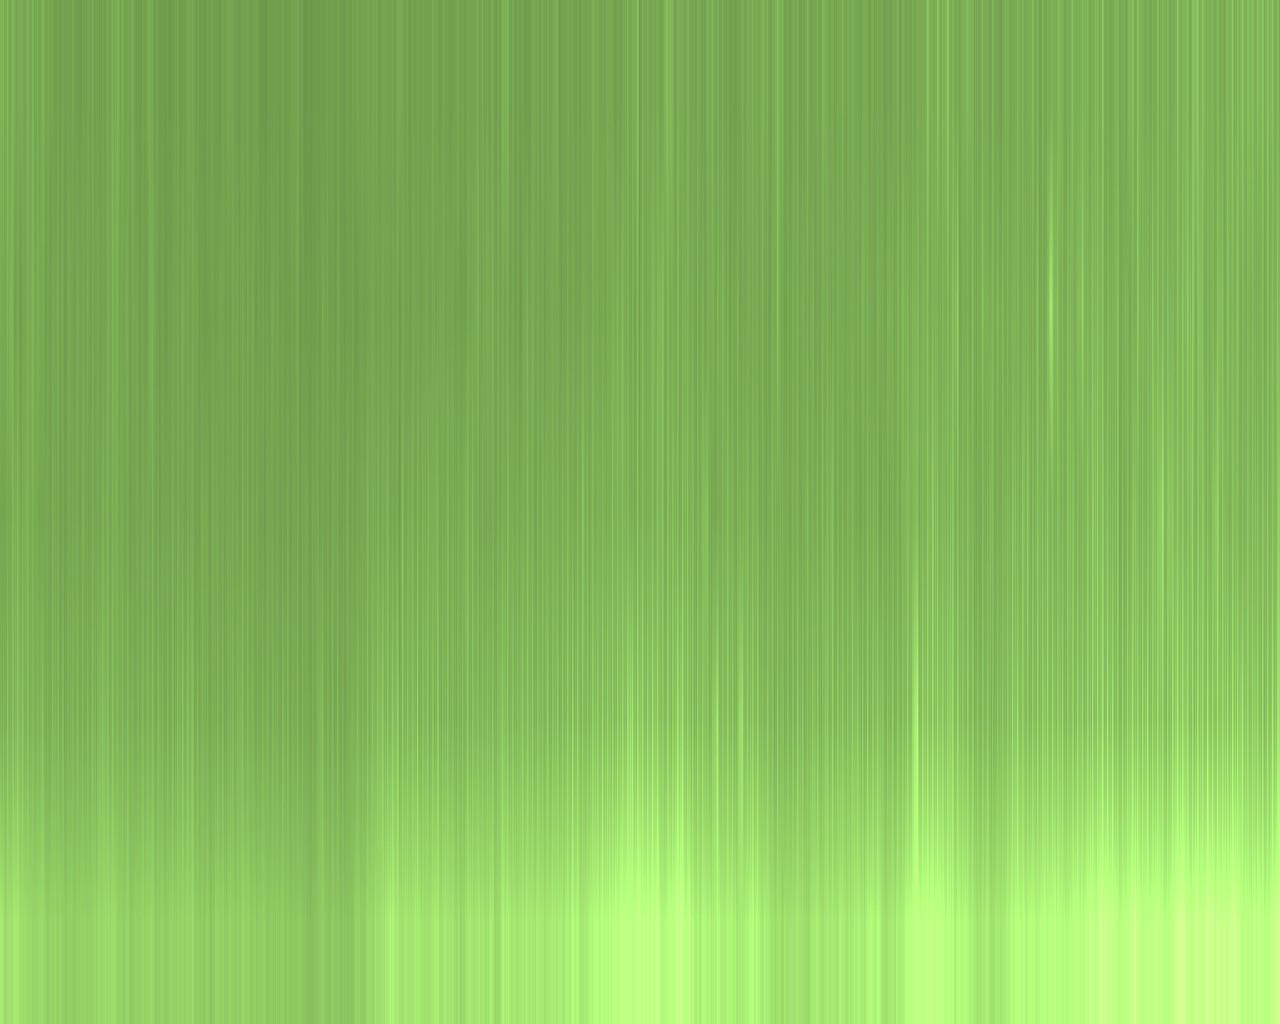 brushed wallpaper greenier by 10r